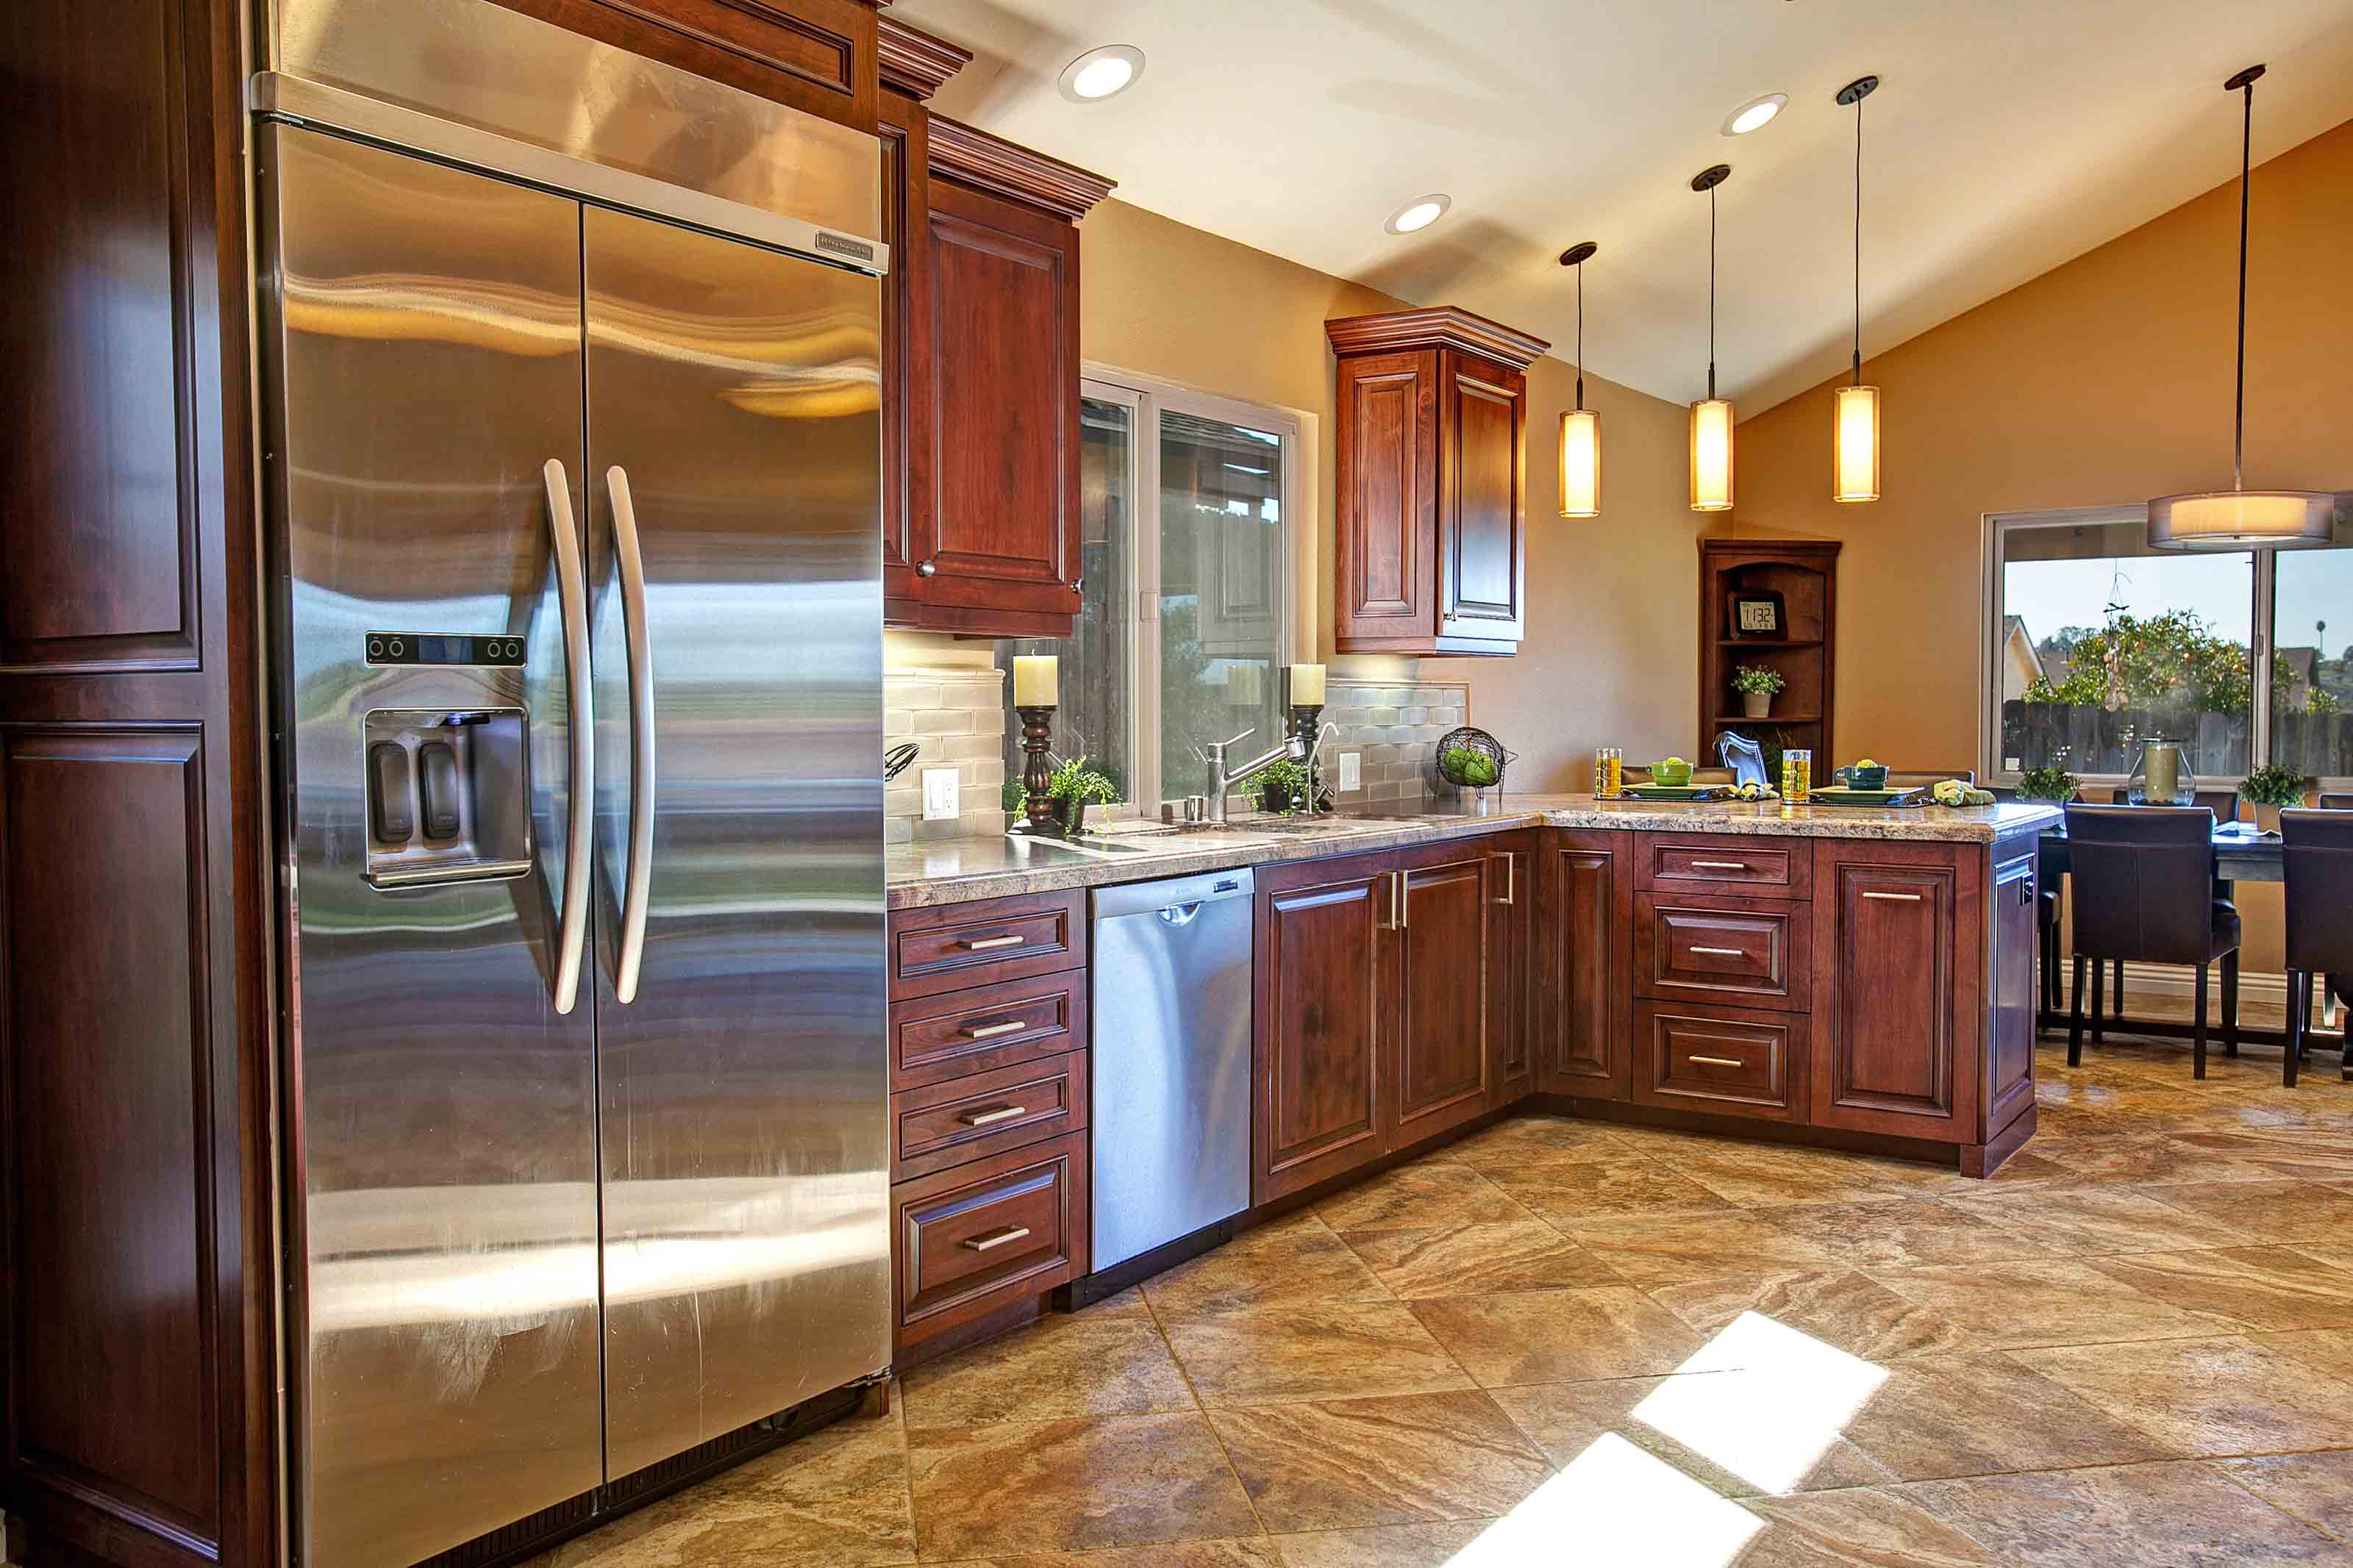 San Carlos Kitchen Remodel Lawson Construction Inc